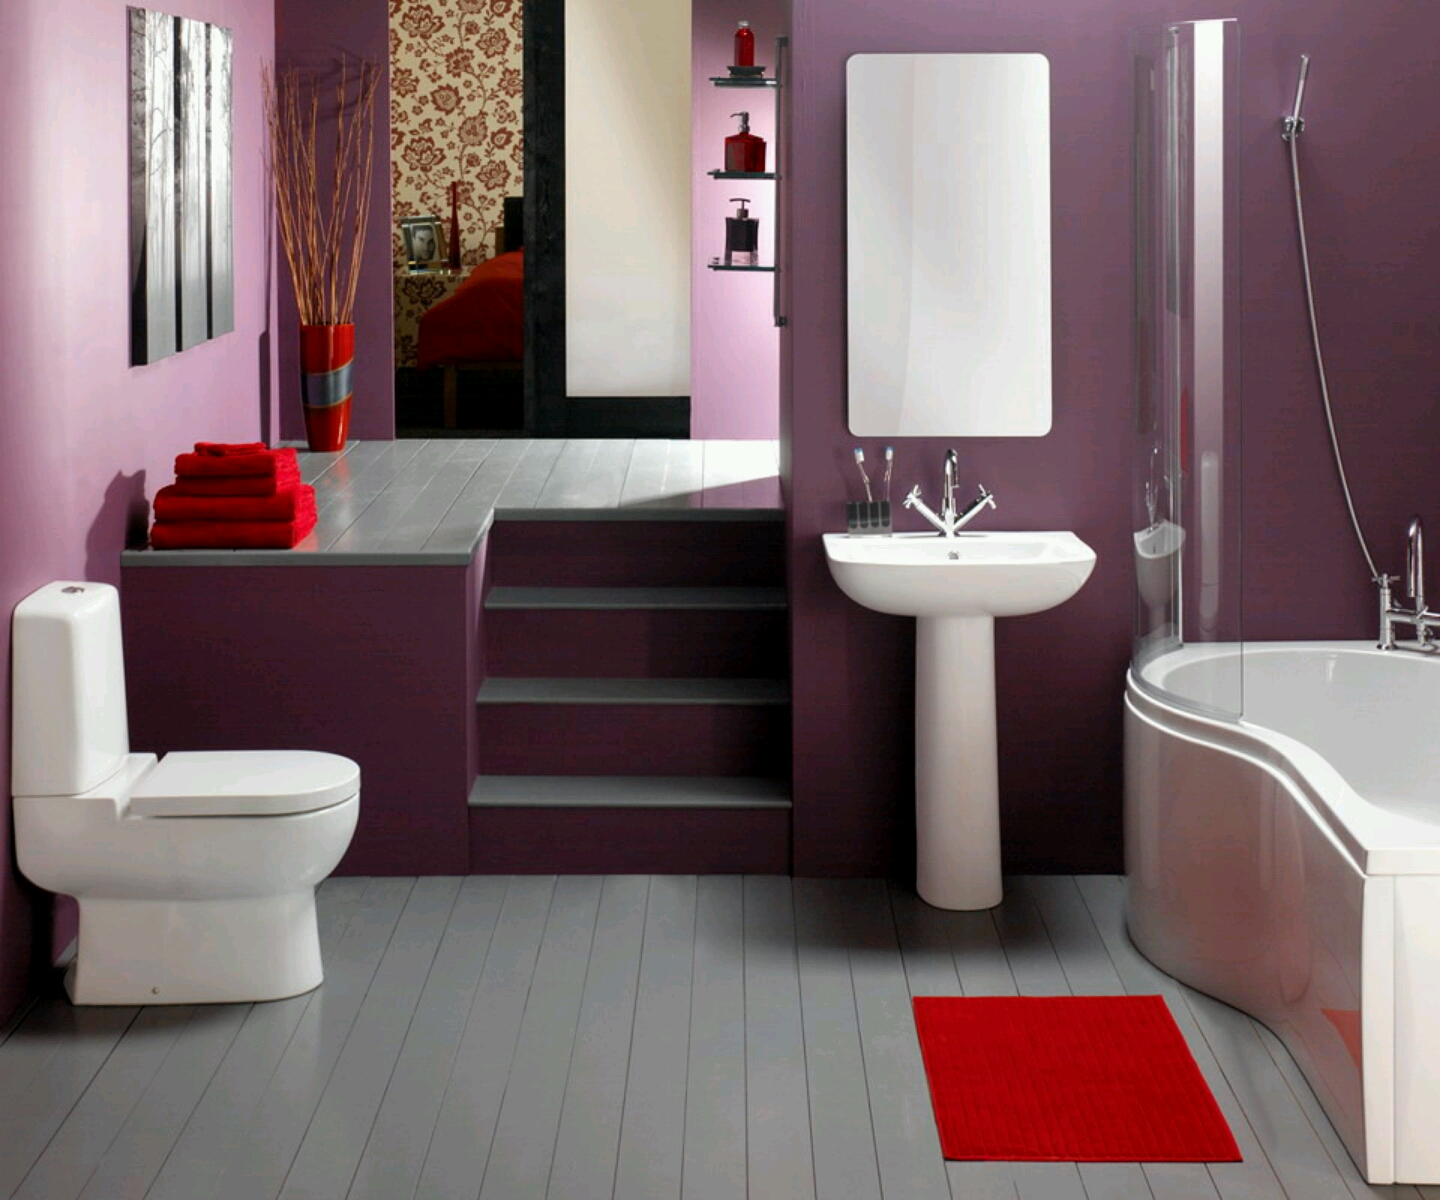 New home designs latest luxury modern bathrooms designs decoration ideas Simple contemporary bathroom design